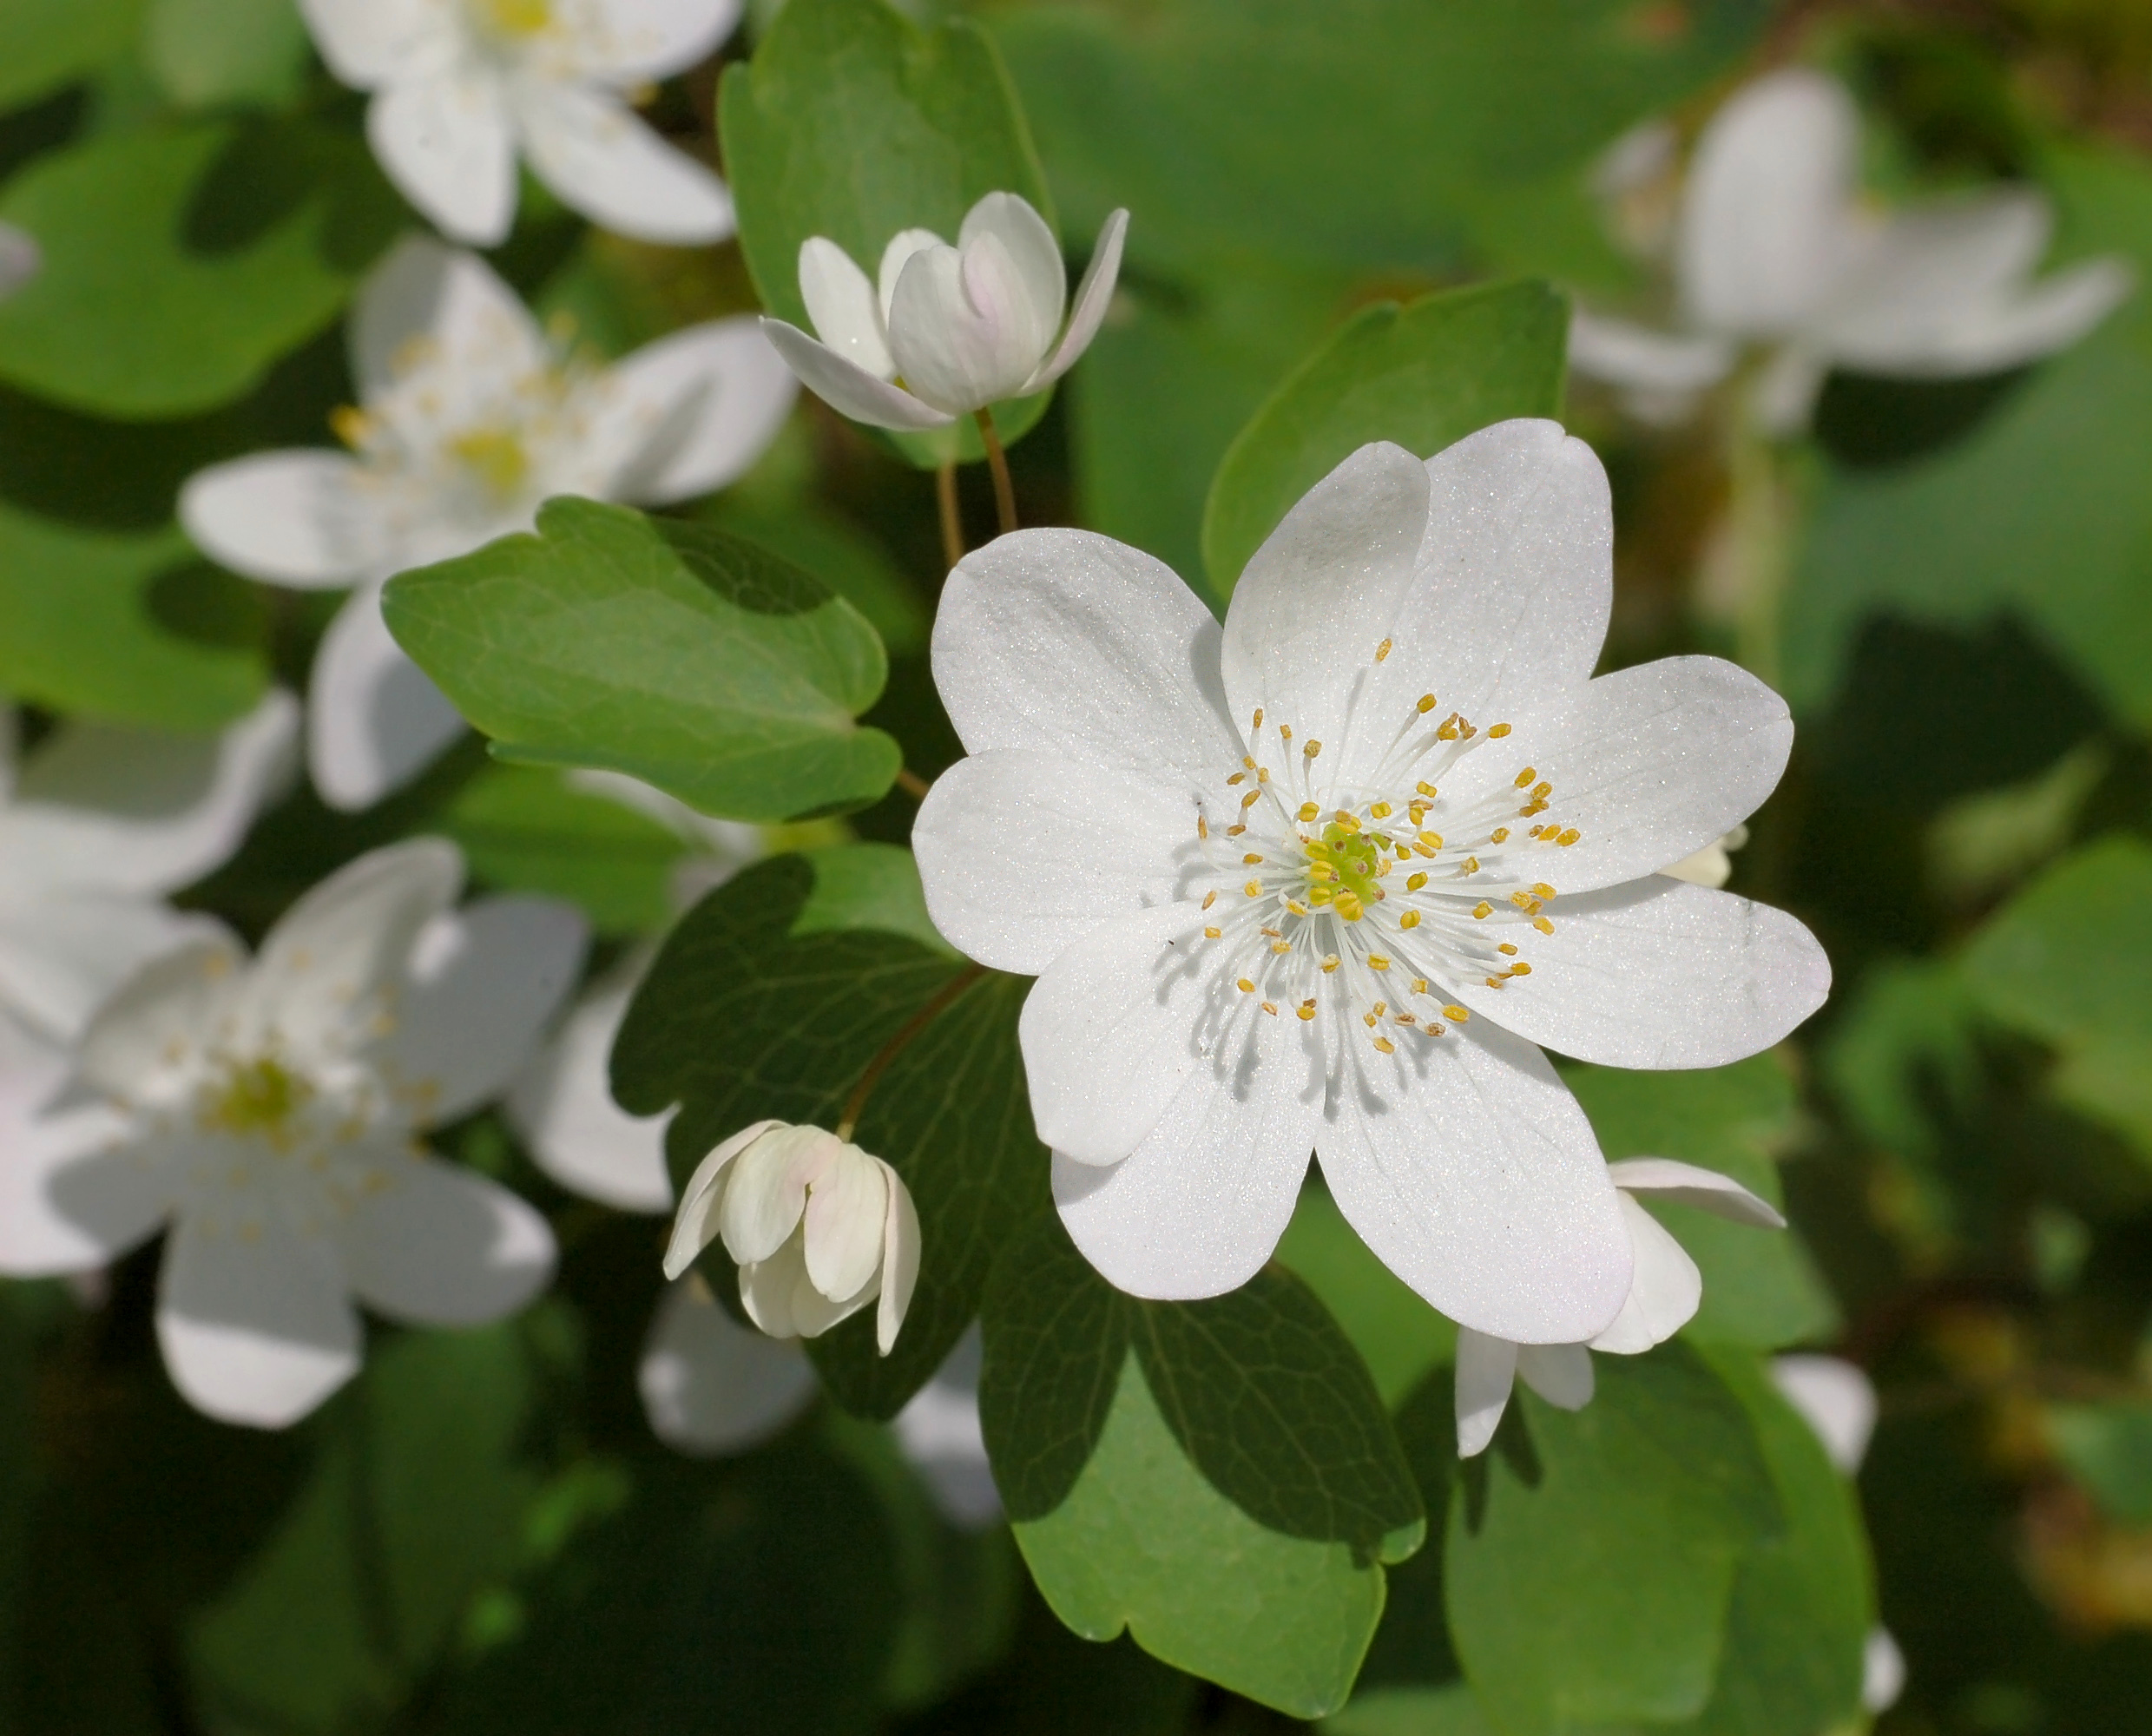 File Rue Anemone Thalictrum thalictroides Flower 2479px